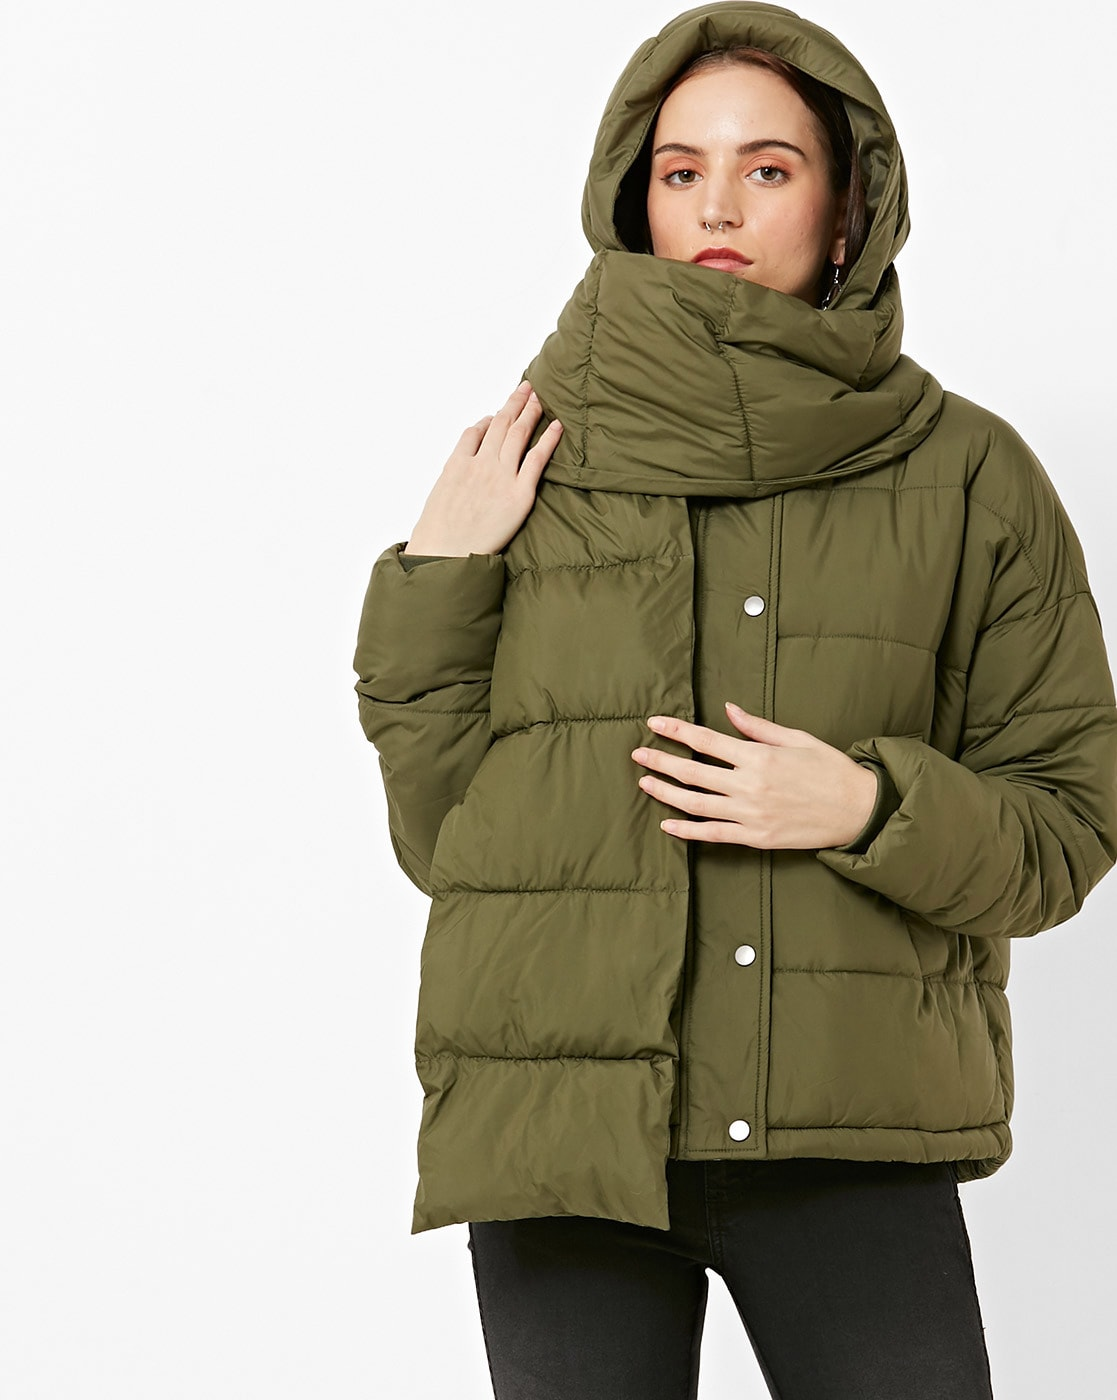 aece025258c6 Buy Olive Green Jackets   Coats for Women by Vero Moda Online ...